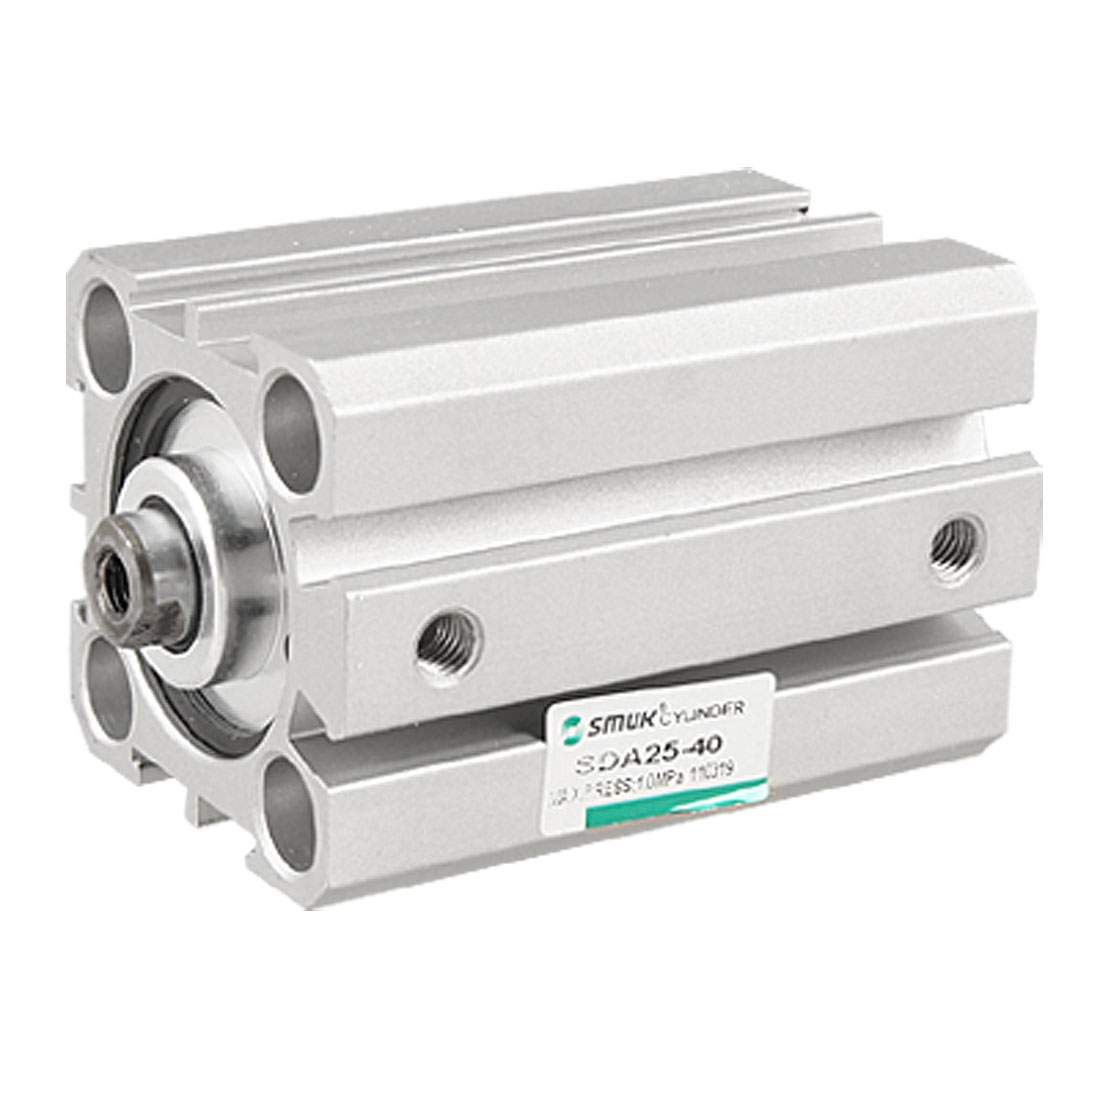 SDA 25x40 Pneumatic Double Action 25mm Bore 40mm Stroke Thin Air Cylinder